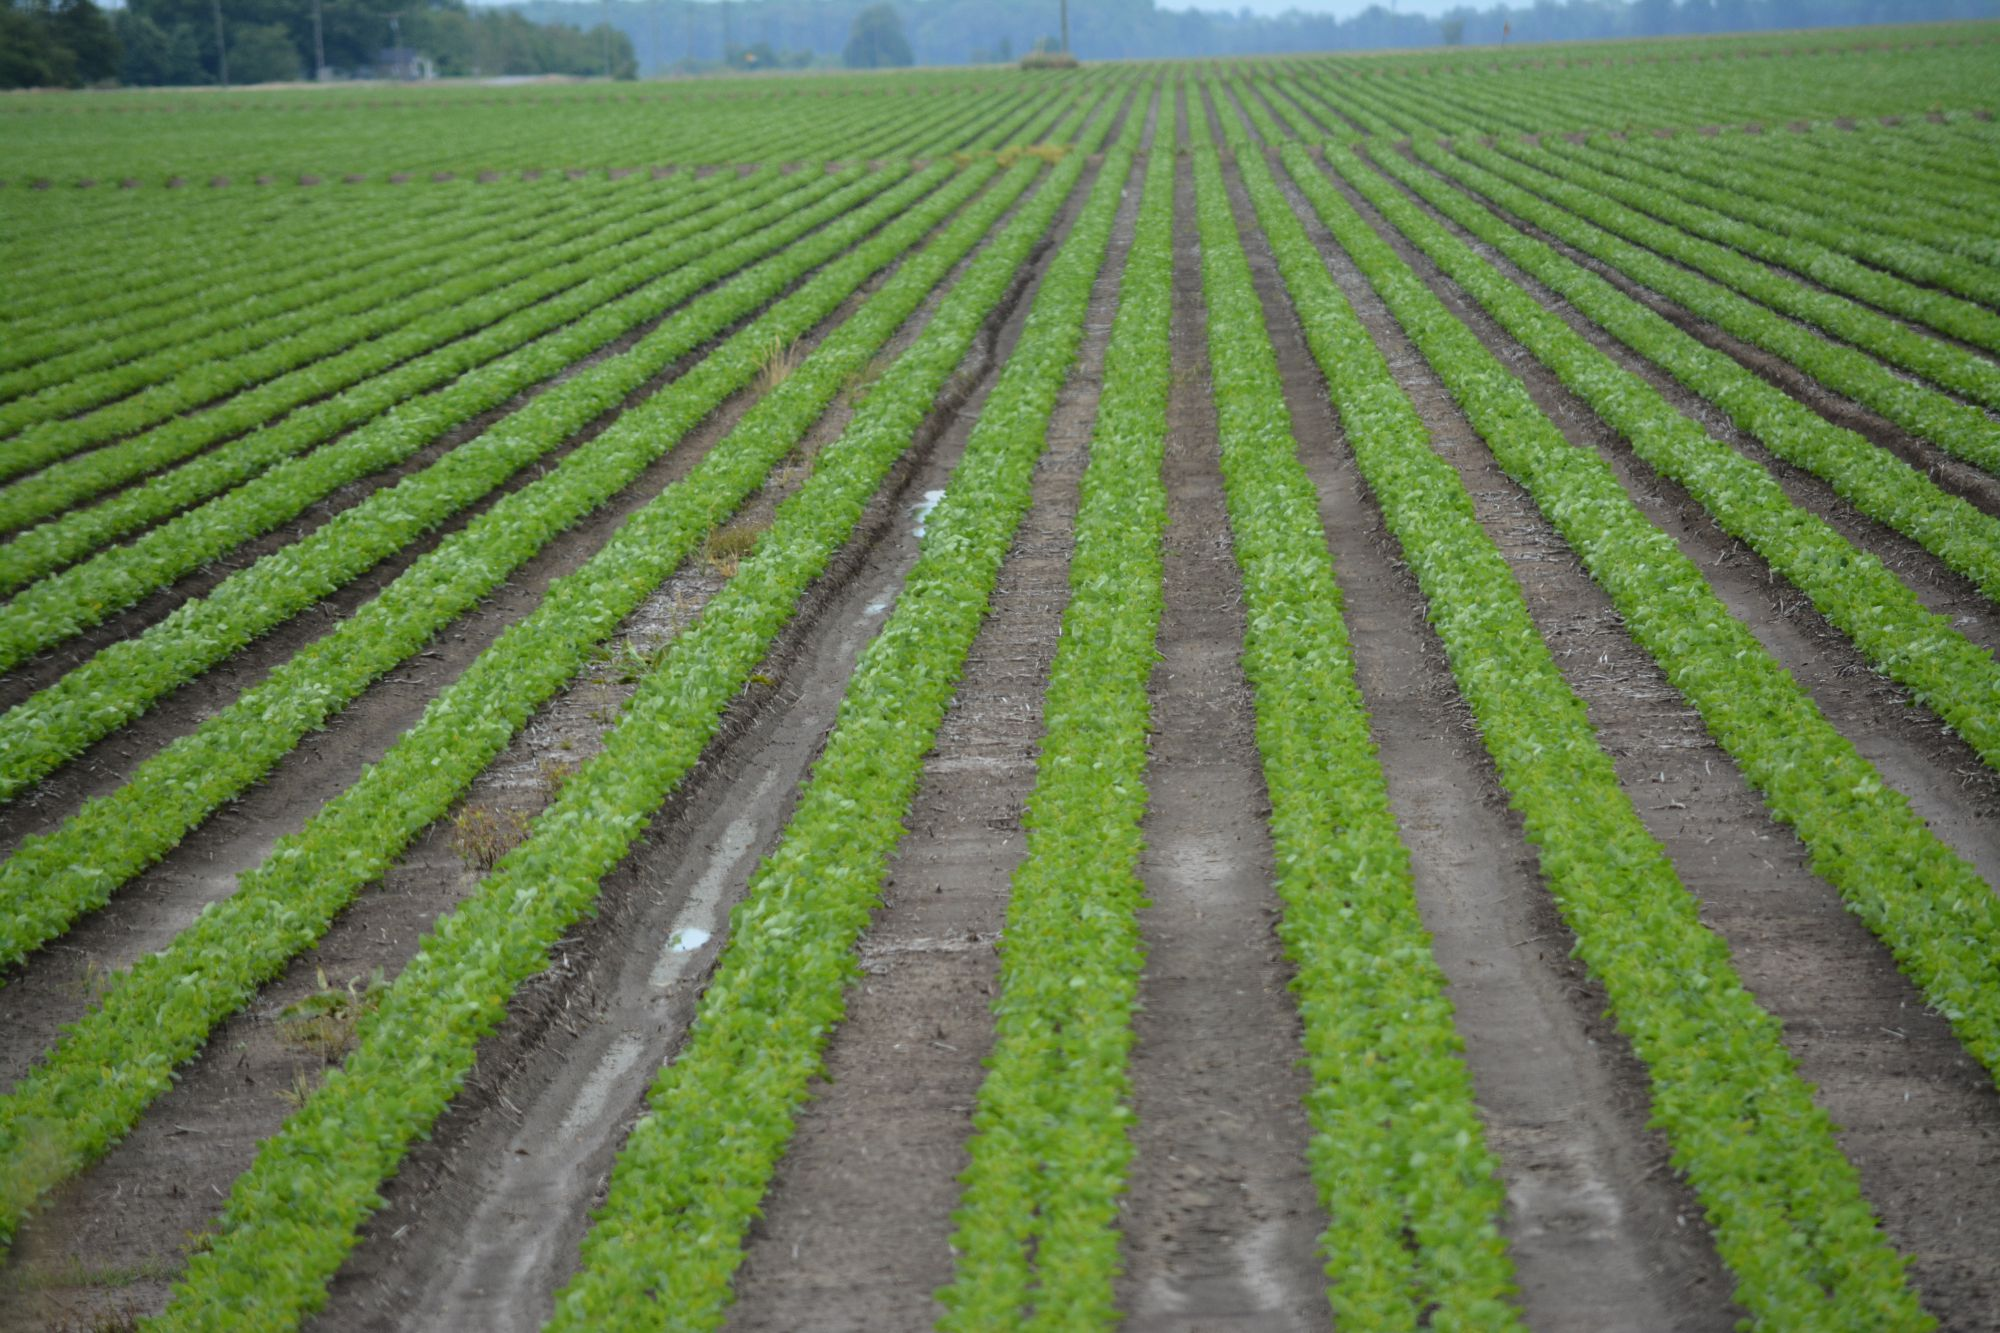 Crops farming in Nigeria